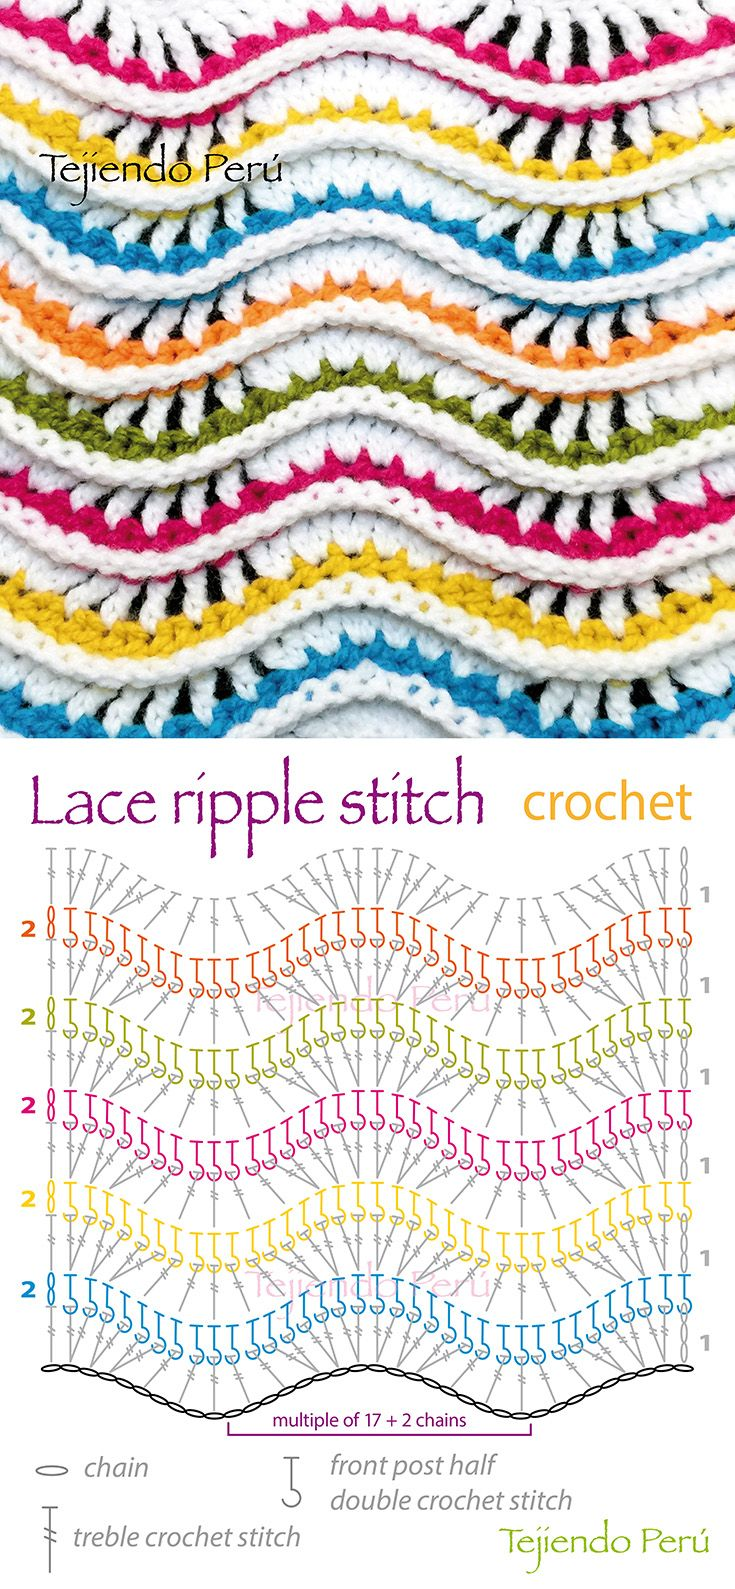 Crochet lace ripple stitch diagram pattern or chart a lot of crochet lace ripple stitch diagram pattern or chart a lot of crochet ccuart Images